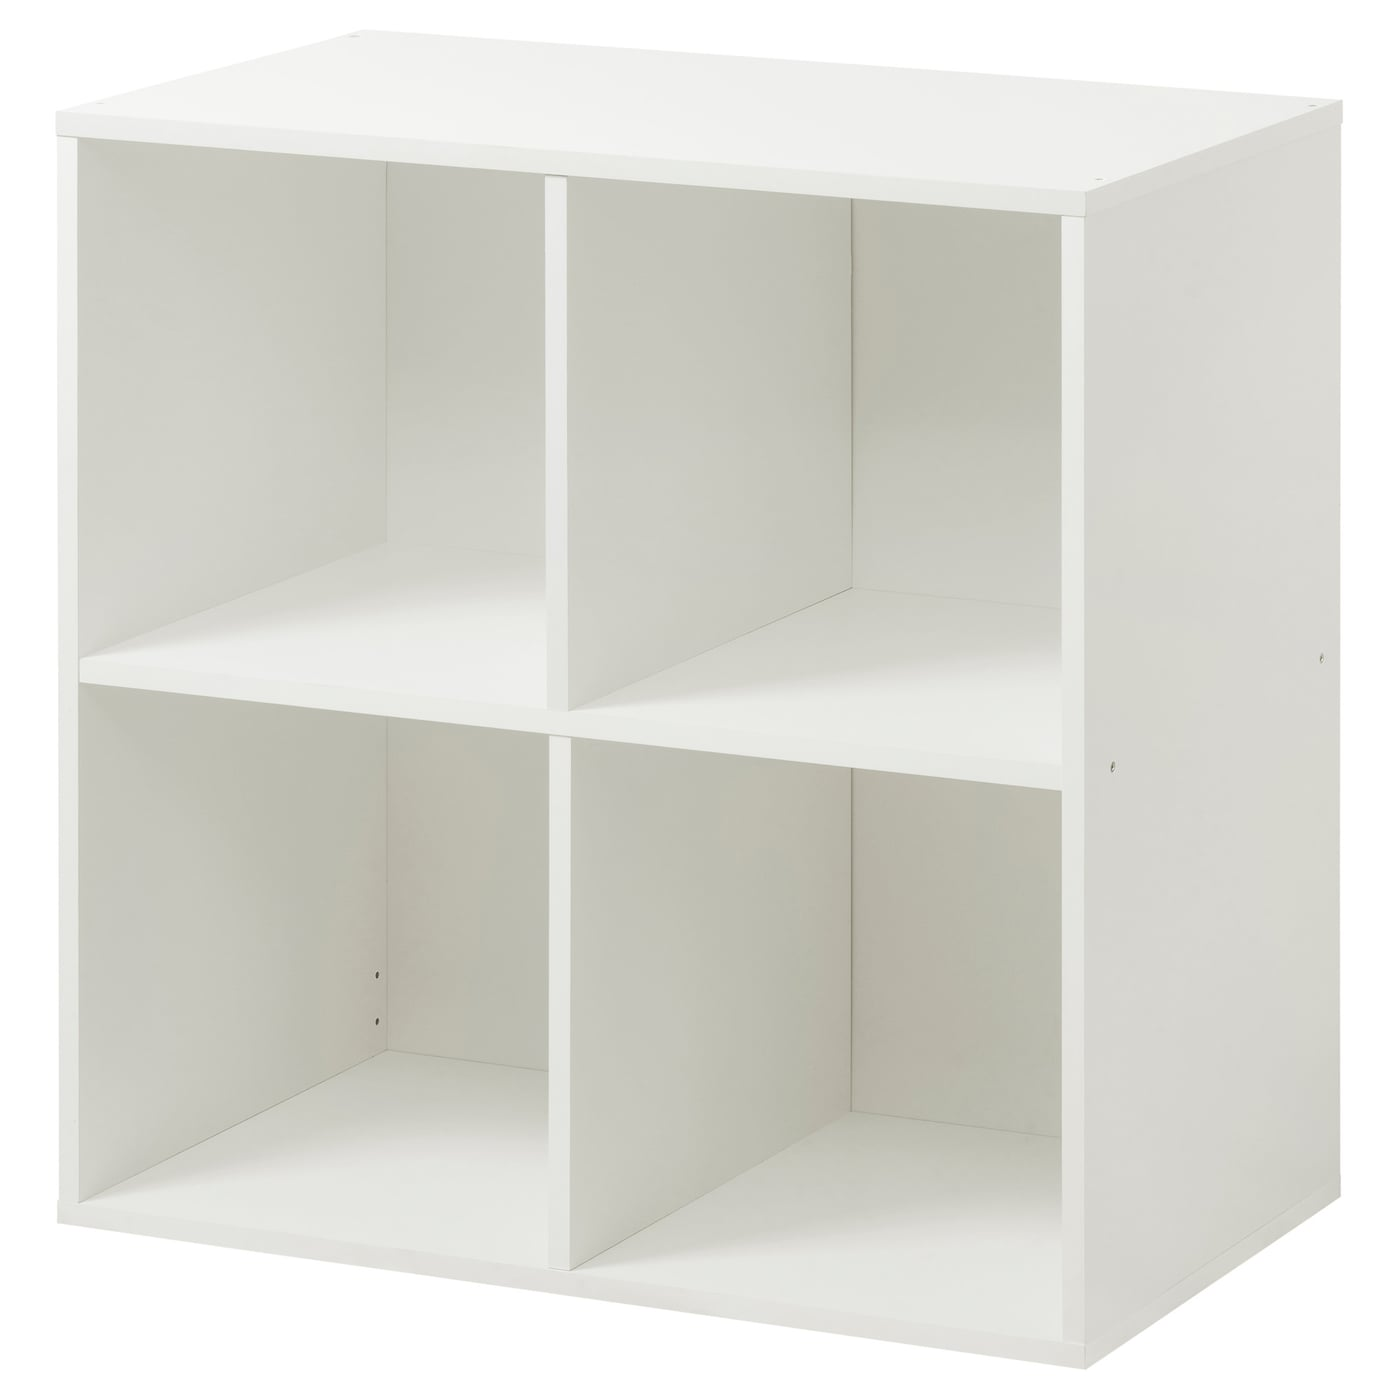 Shelving units systems ikea ireland for Furniture 30cm deep